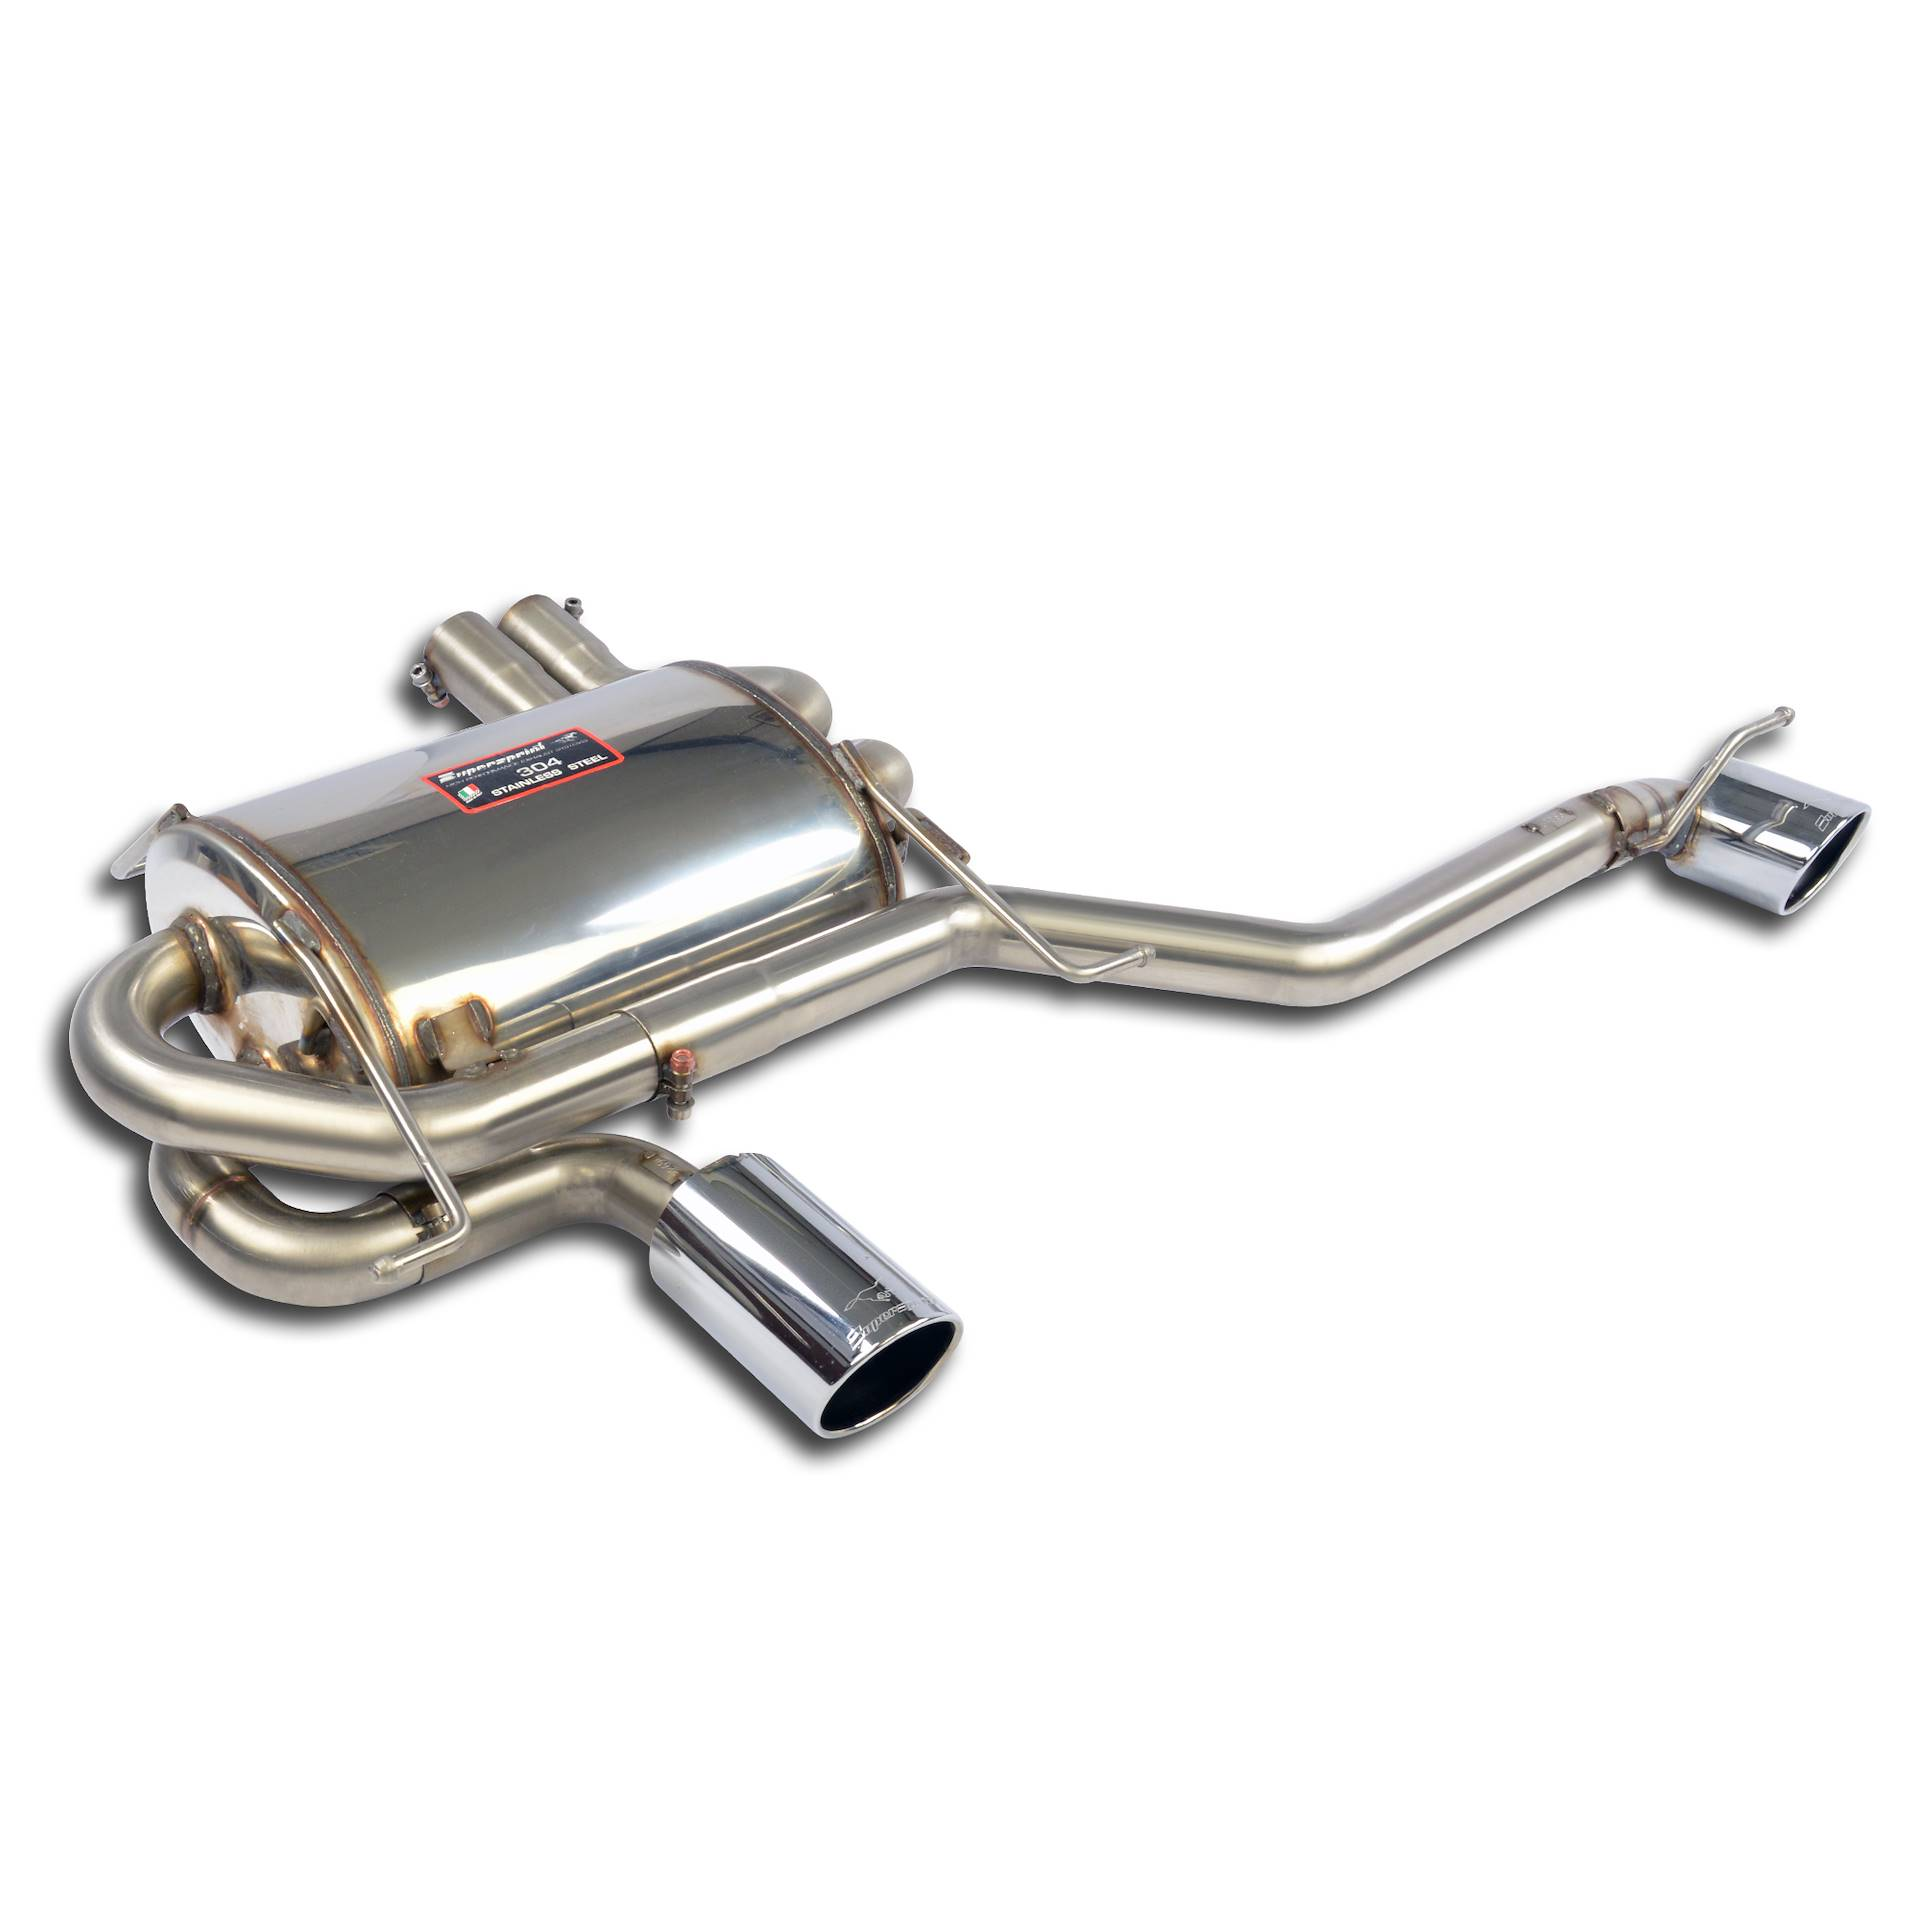 BMW - BMW E90 Sedan 328i / 328xi (USA version - N51 / N52N) 2006 -> 2008 Rear exhaust kit Right O90 - Left O90, performance exhaust systems